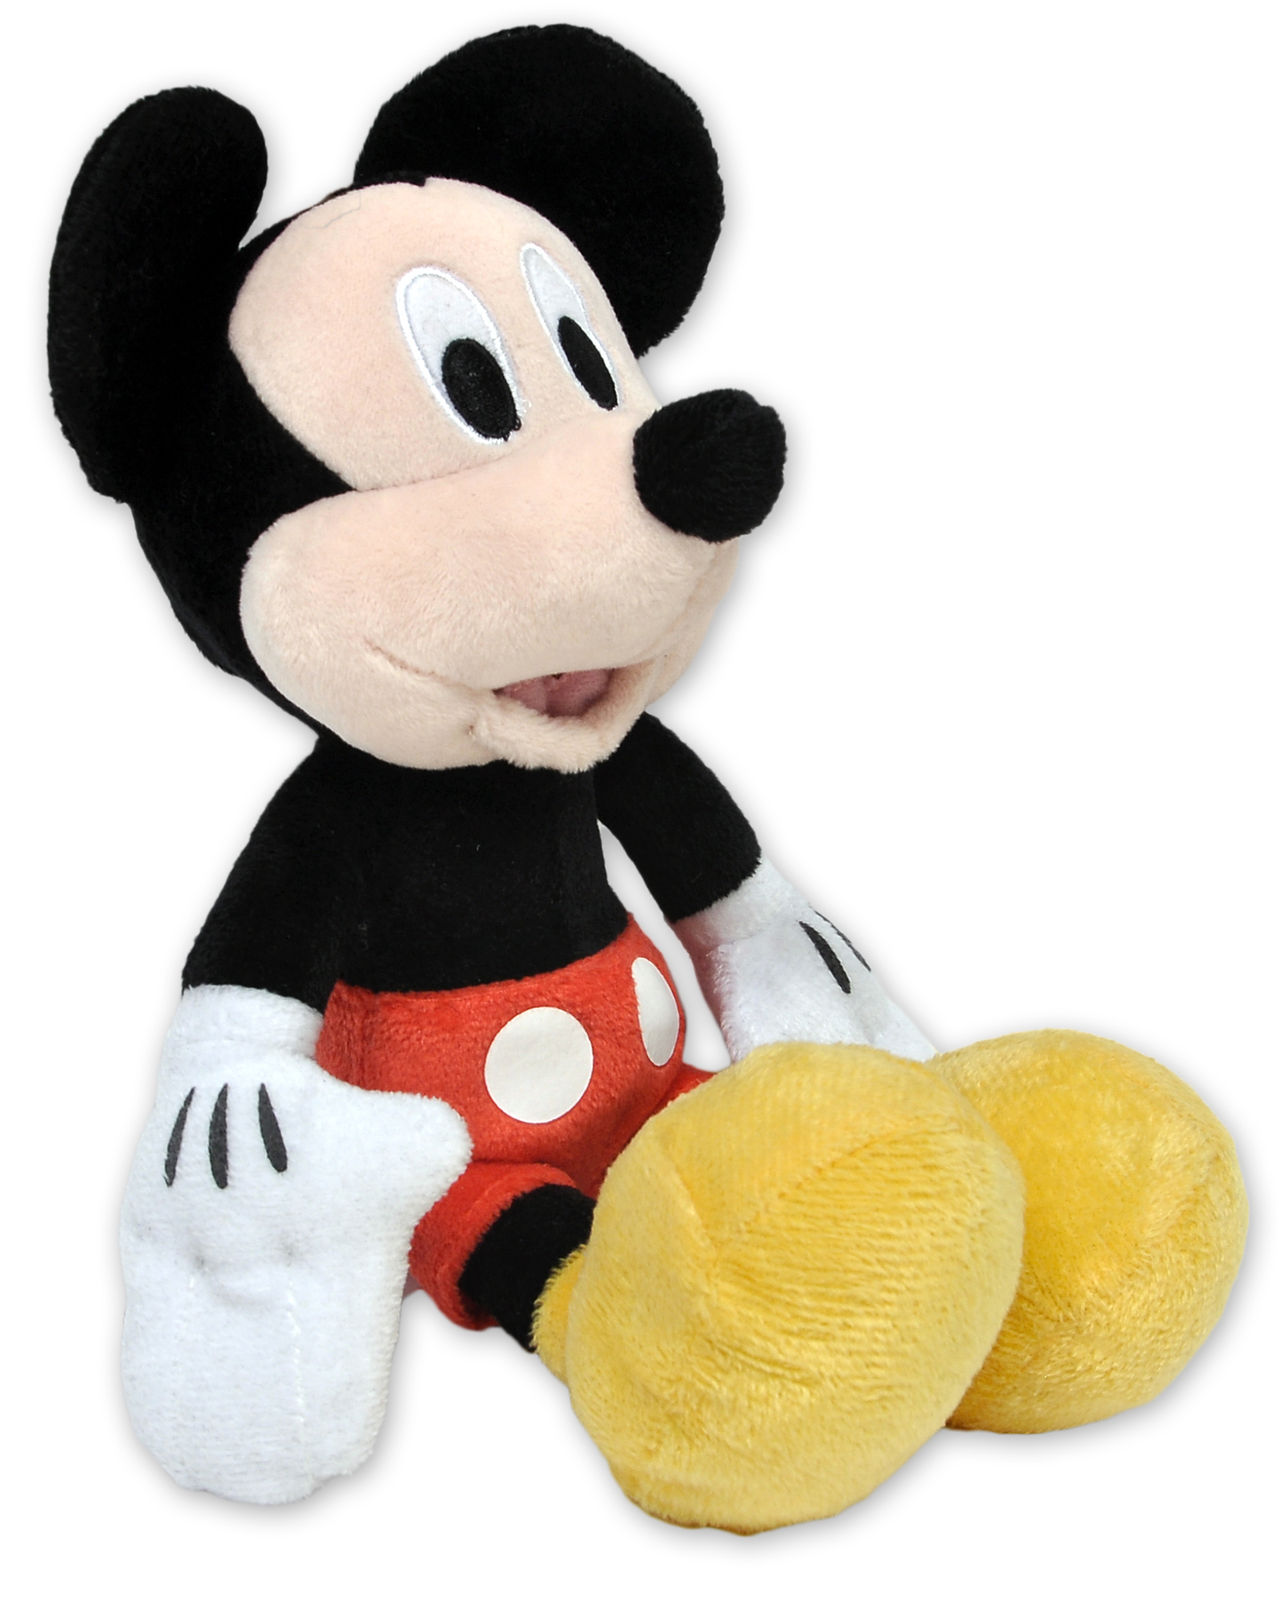 "Disney Mickey Mouse 16"" Plush Stuffed Toy Authentic Licensed Soft Doll Gifts Toys by Disney"